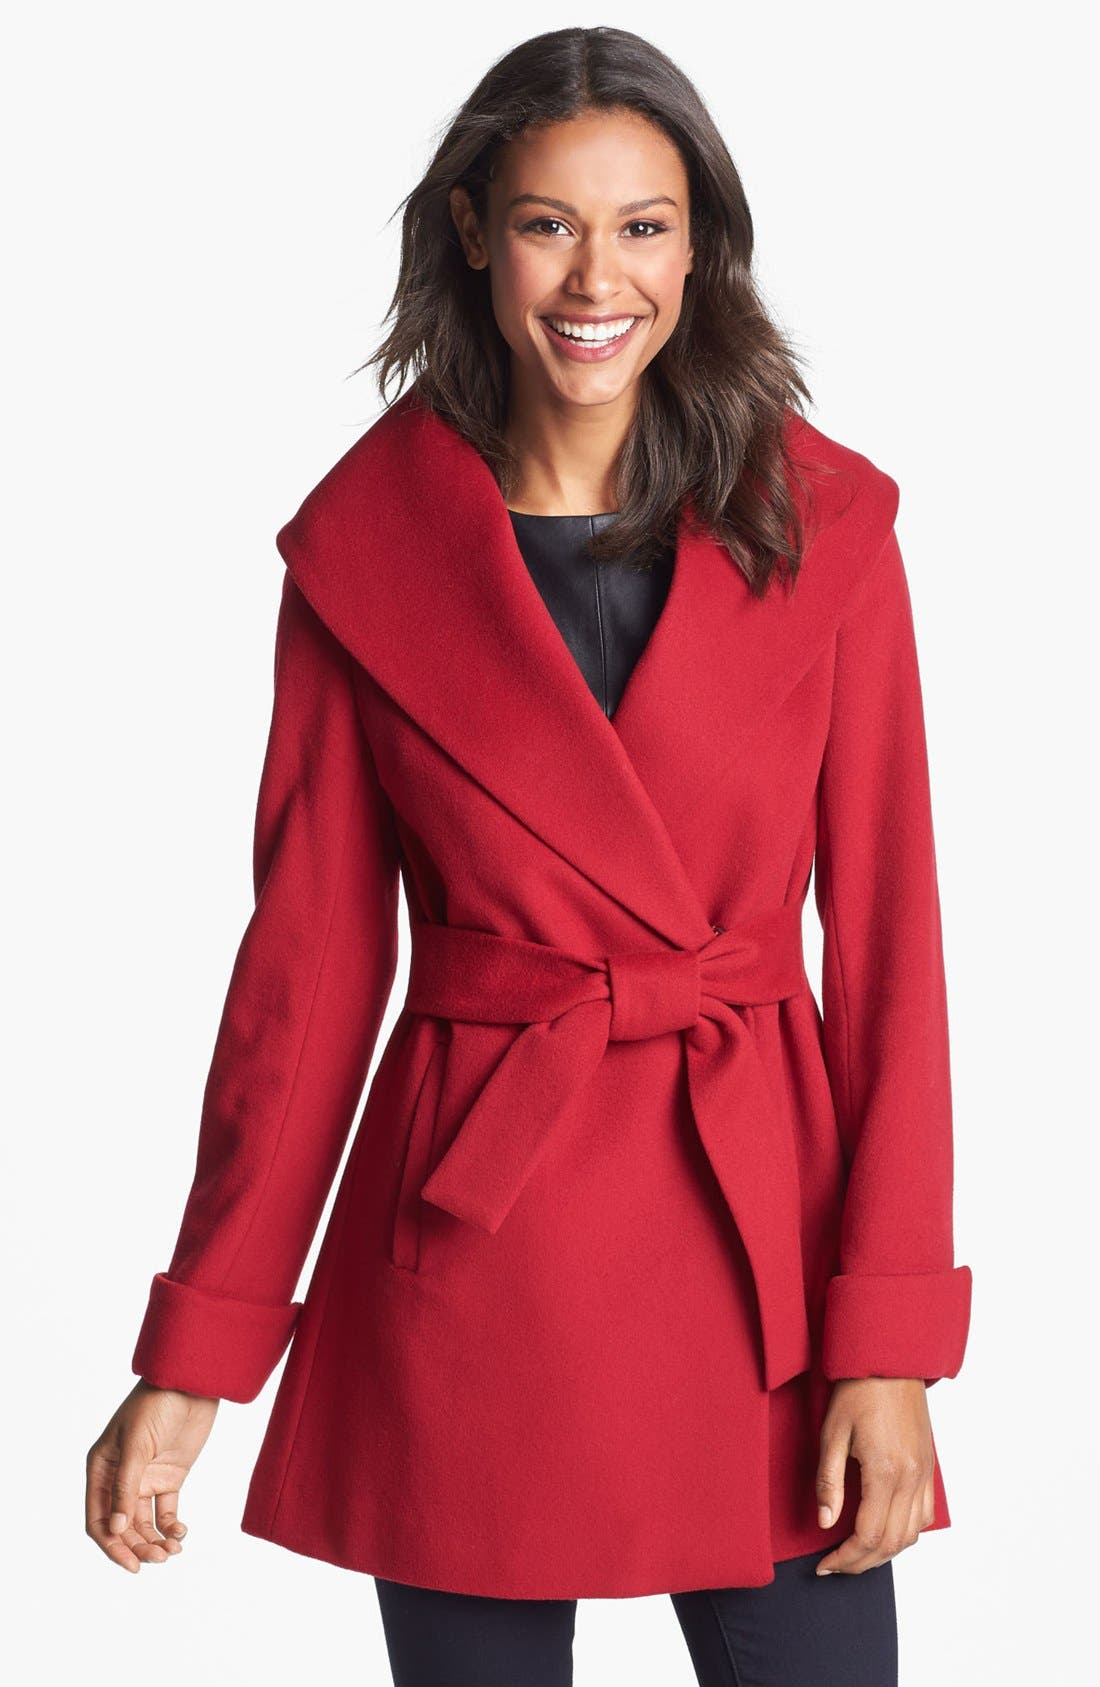 Alternate Image 1 Selected - Trina Turk Belted Wrap Coat (Regular & Petite)